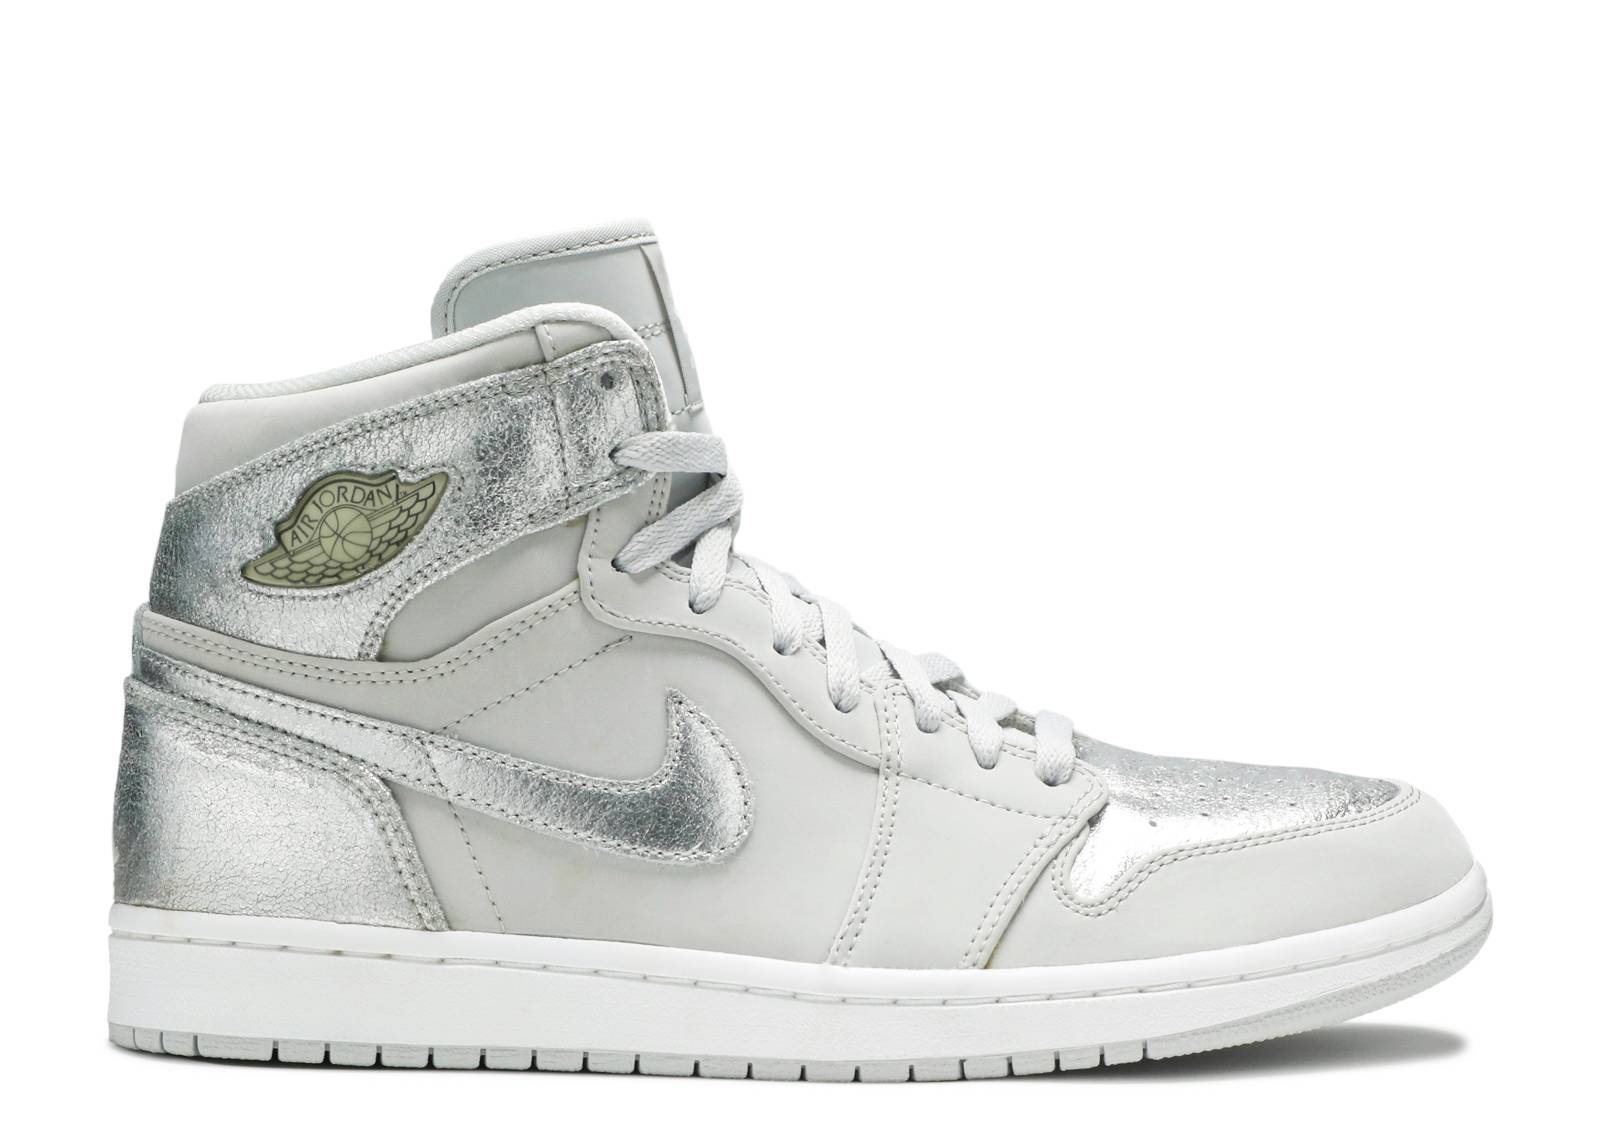 reputable site 7728f e1f85 new zealand shop air jordan retro 1 silver 02806 04d67